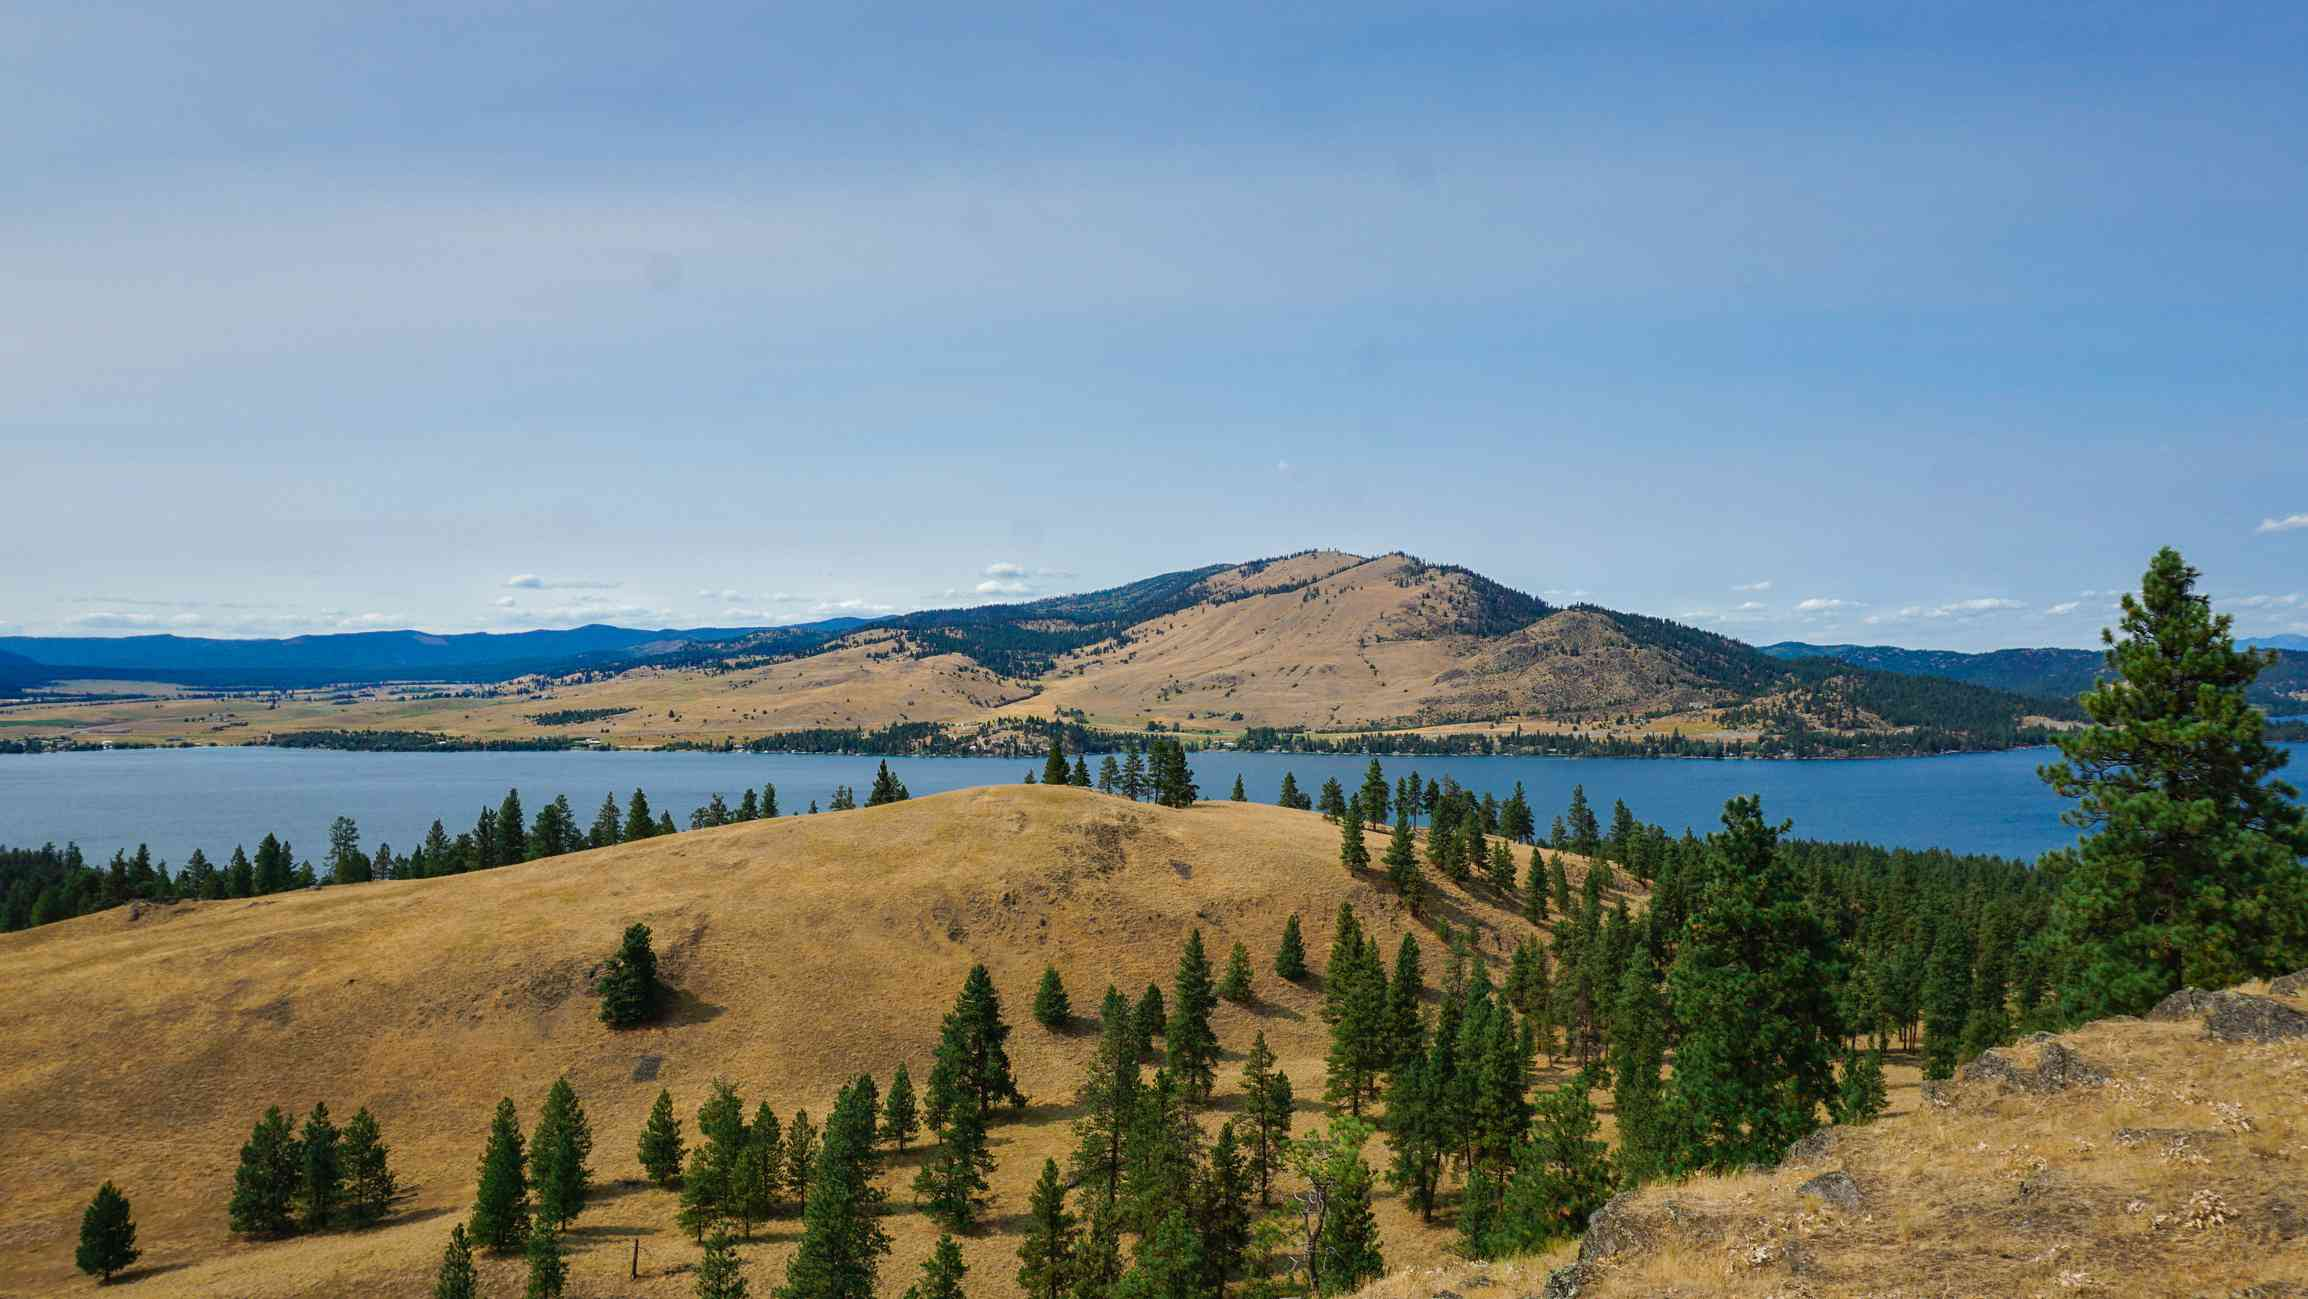 Aerial View of Wild Horse Island at the Flathead Lake in Montana